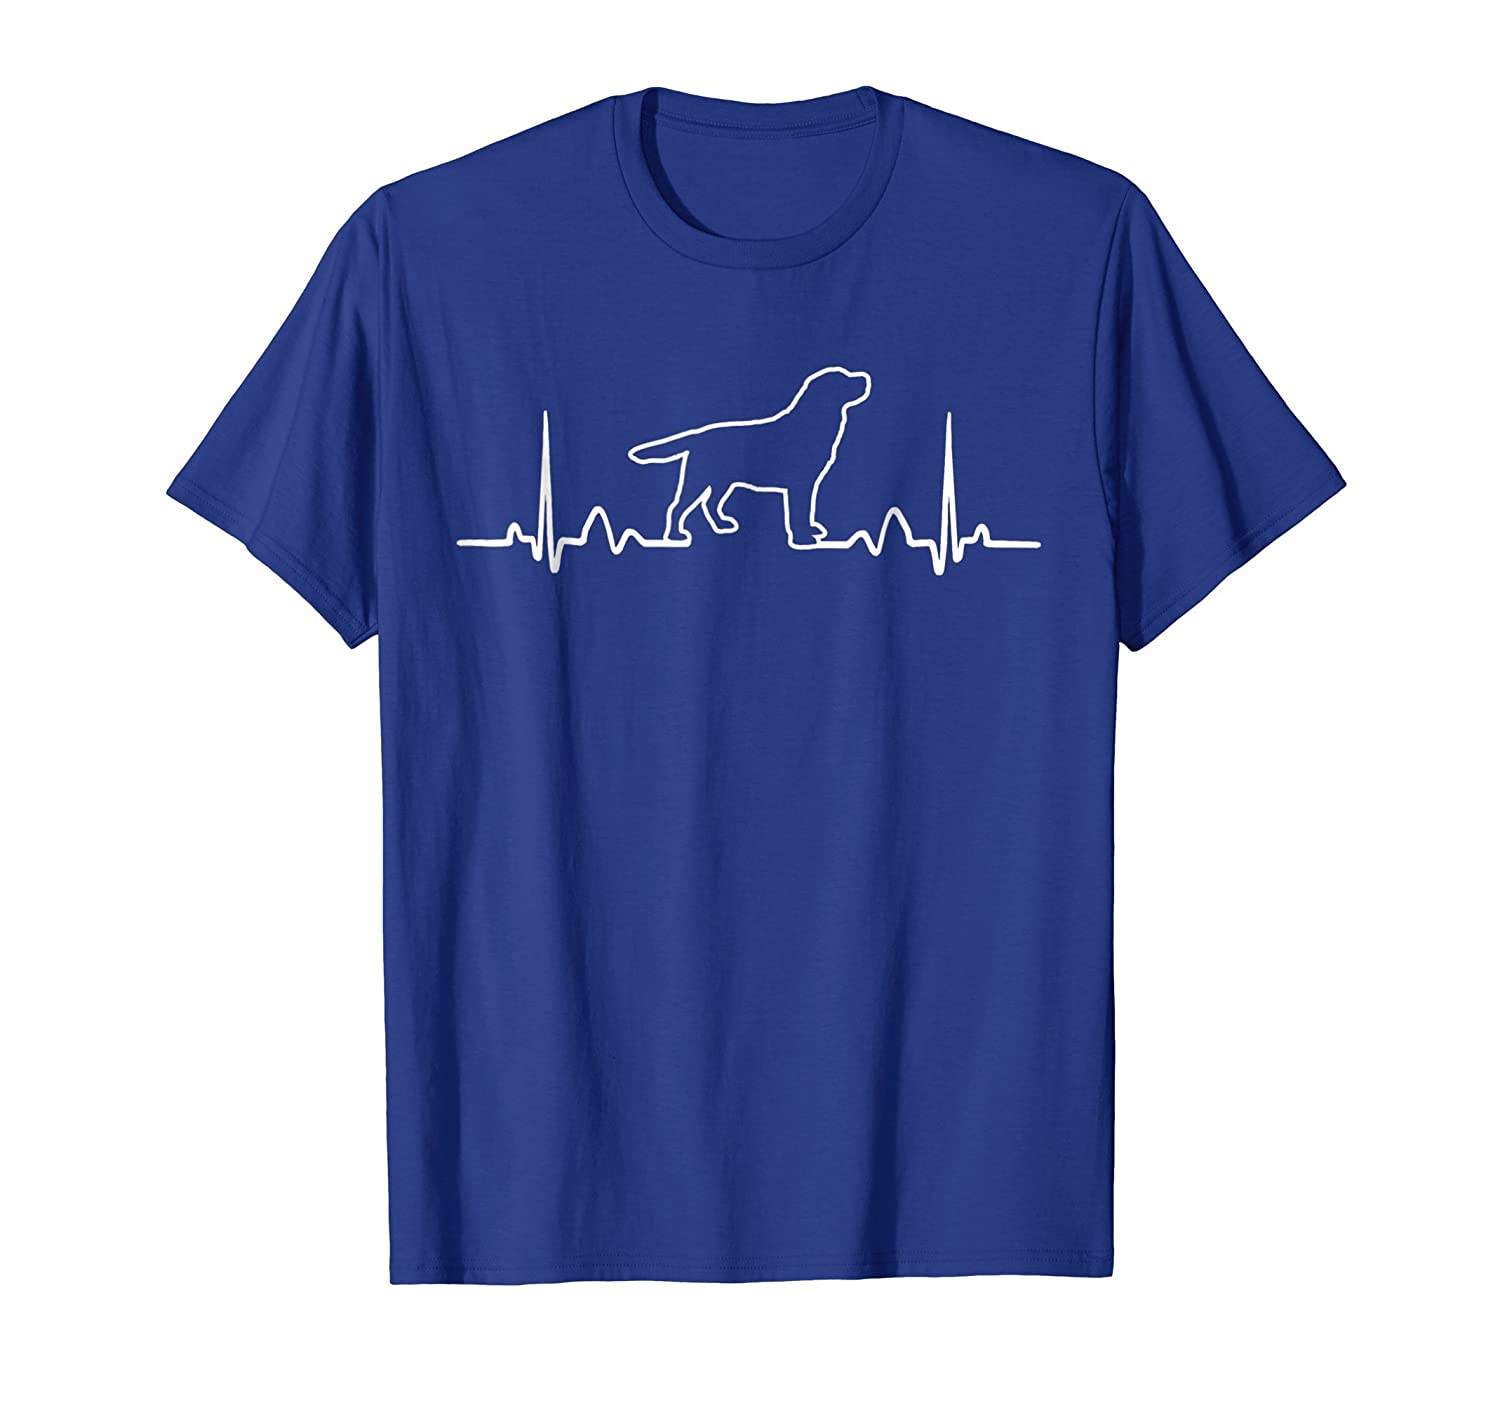 Labrador Retriever Dog Heartbeat Funny Dog Gift Tee Shirt Dog Heartbeat T-Shirt